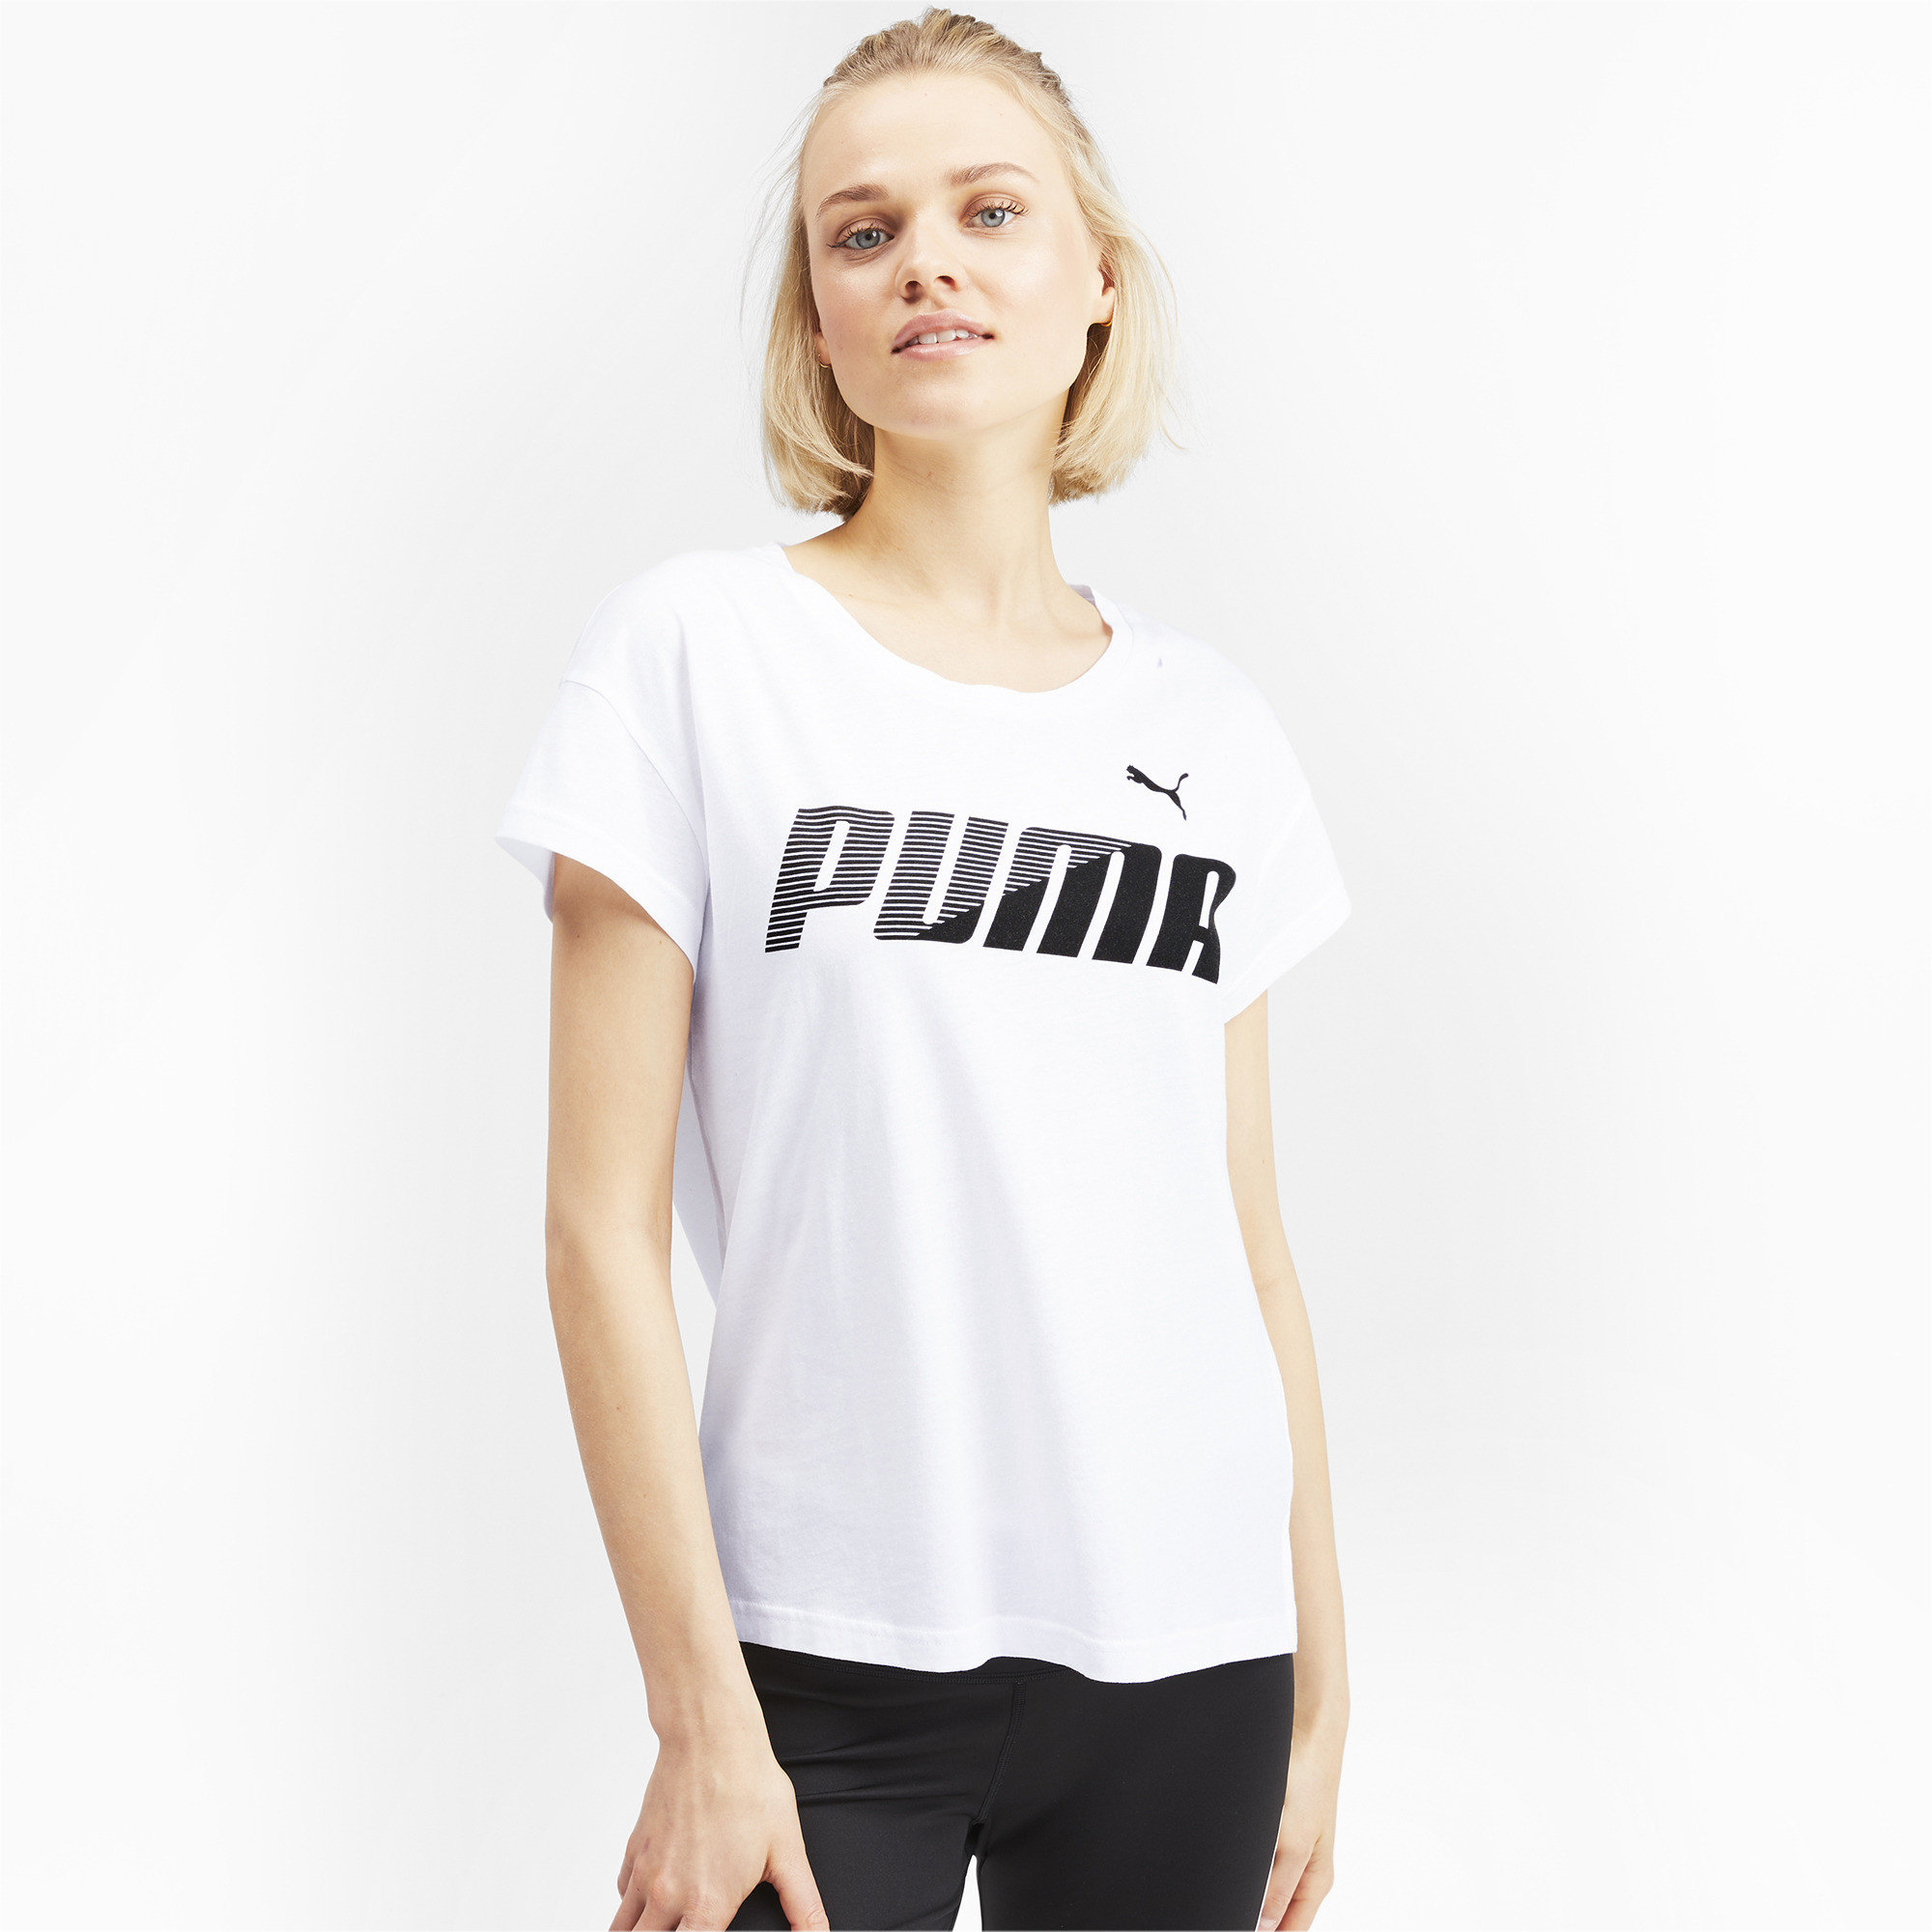 PUMA-Modern-Sports-Women-039-s-Graphic-Tee-Women-Tee-Basics thumbnail 9